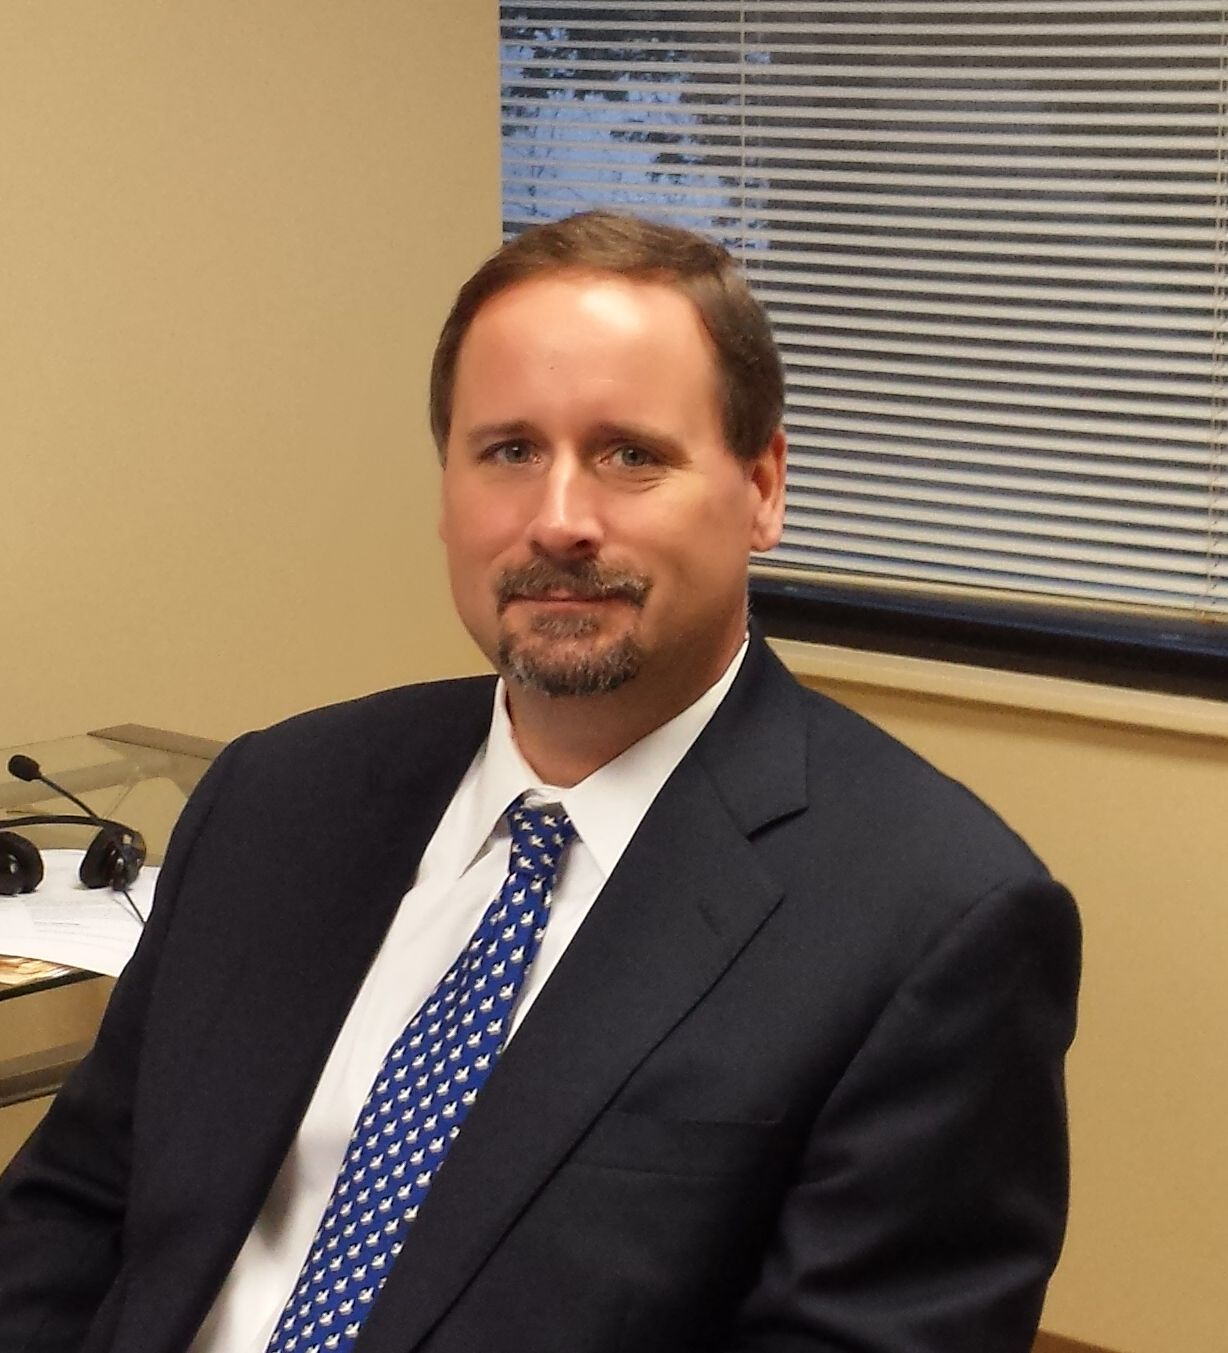 Robert Freeman, financial advisor Ashland VA